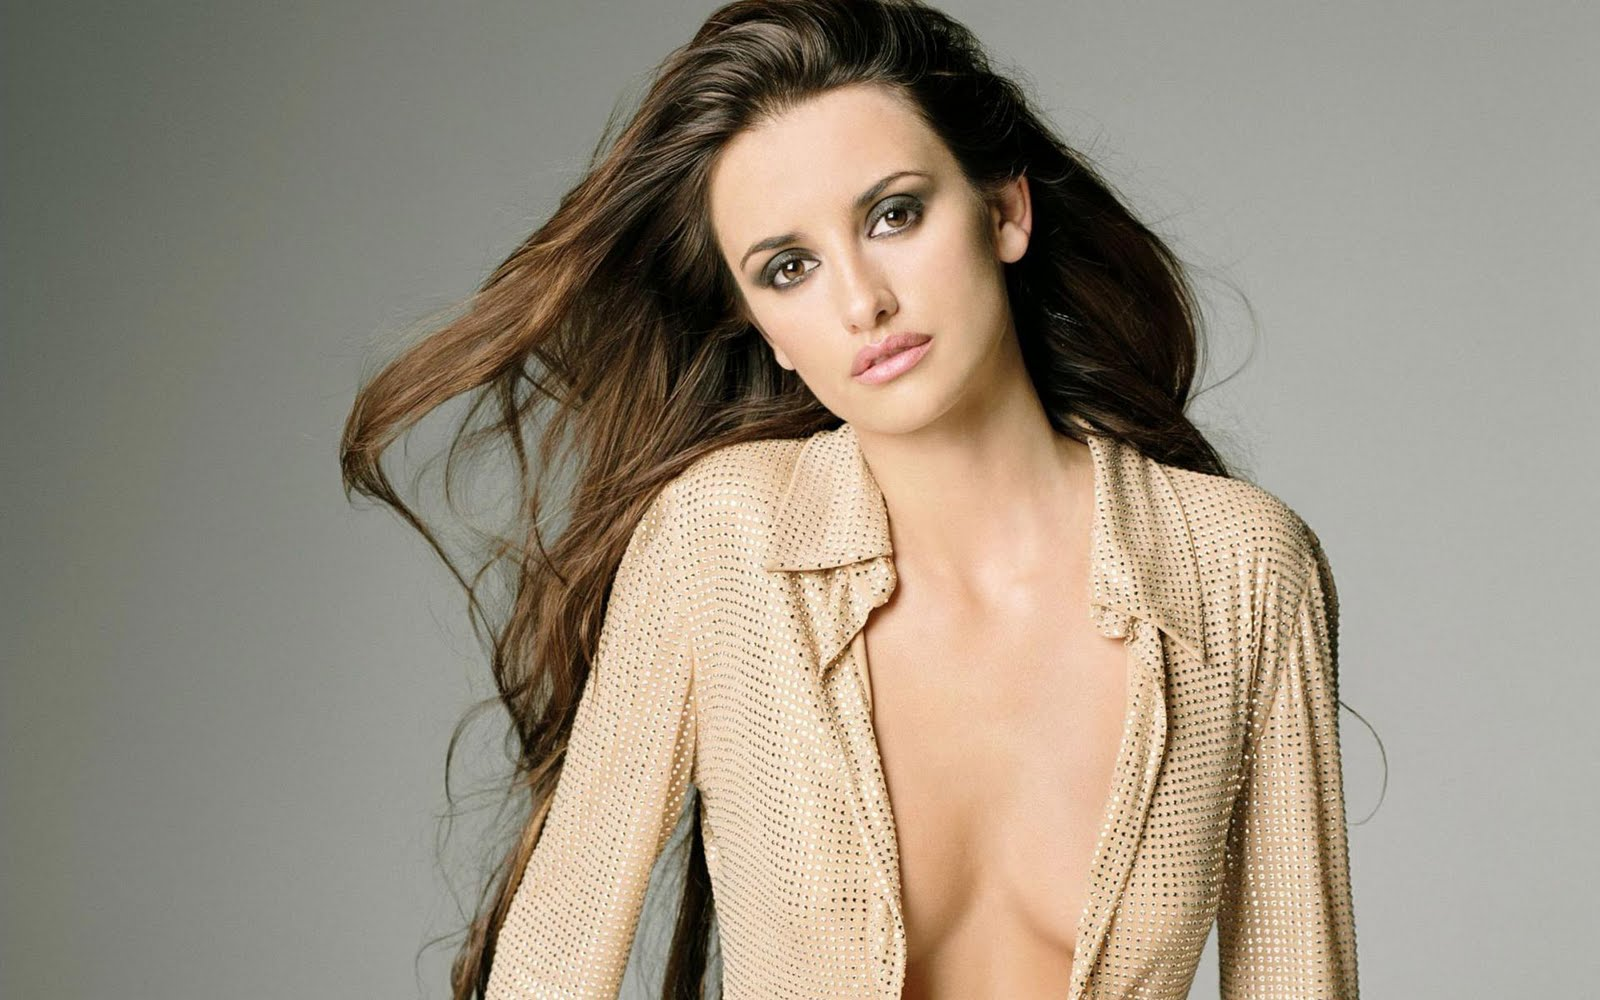 Cleavage Penelope Cruz naked (96 photo), Sexy, Cleavage, Boobs, swimsuit 2019